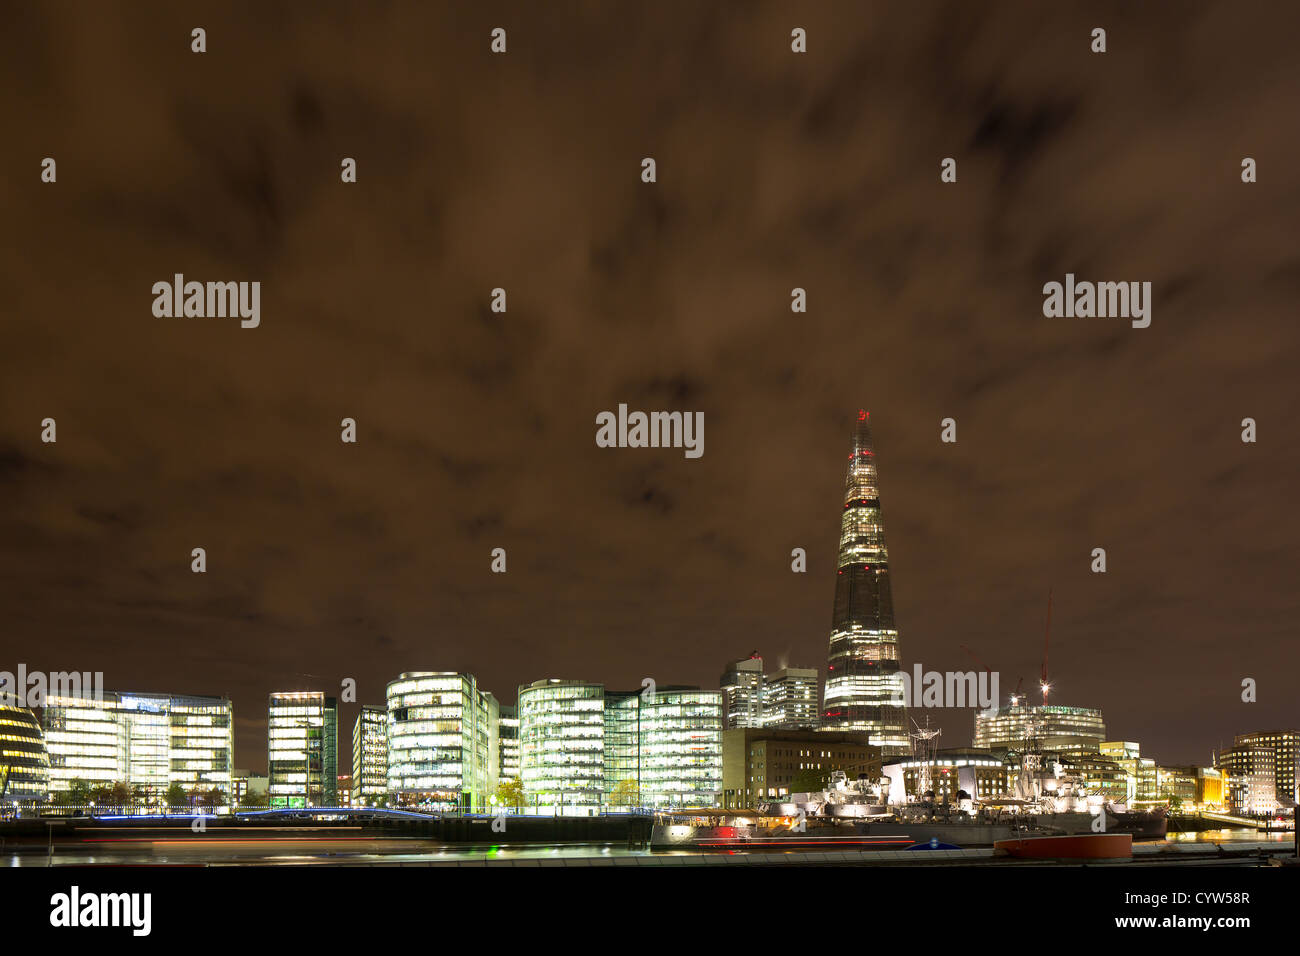 London Assembly and The Shard at night, view from Tower Bridge - Stock Image